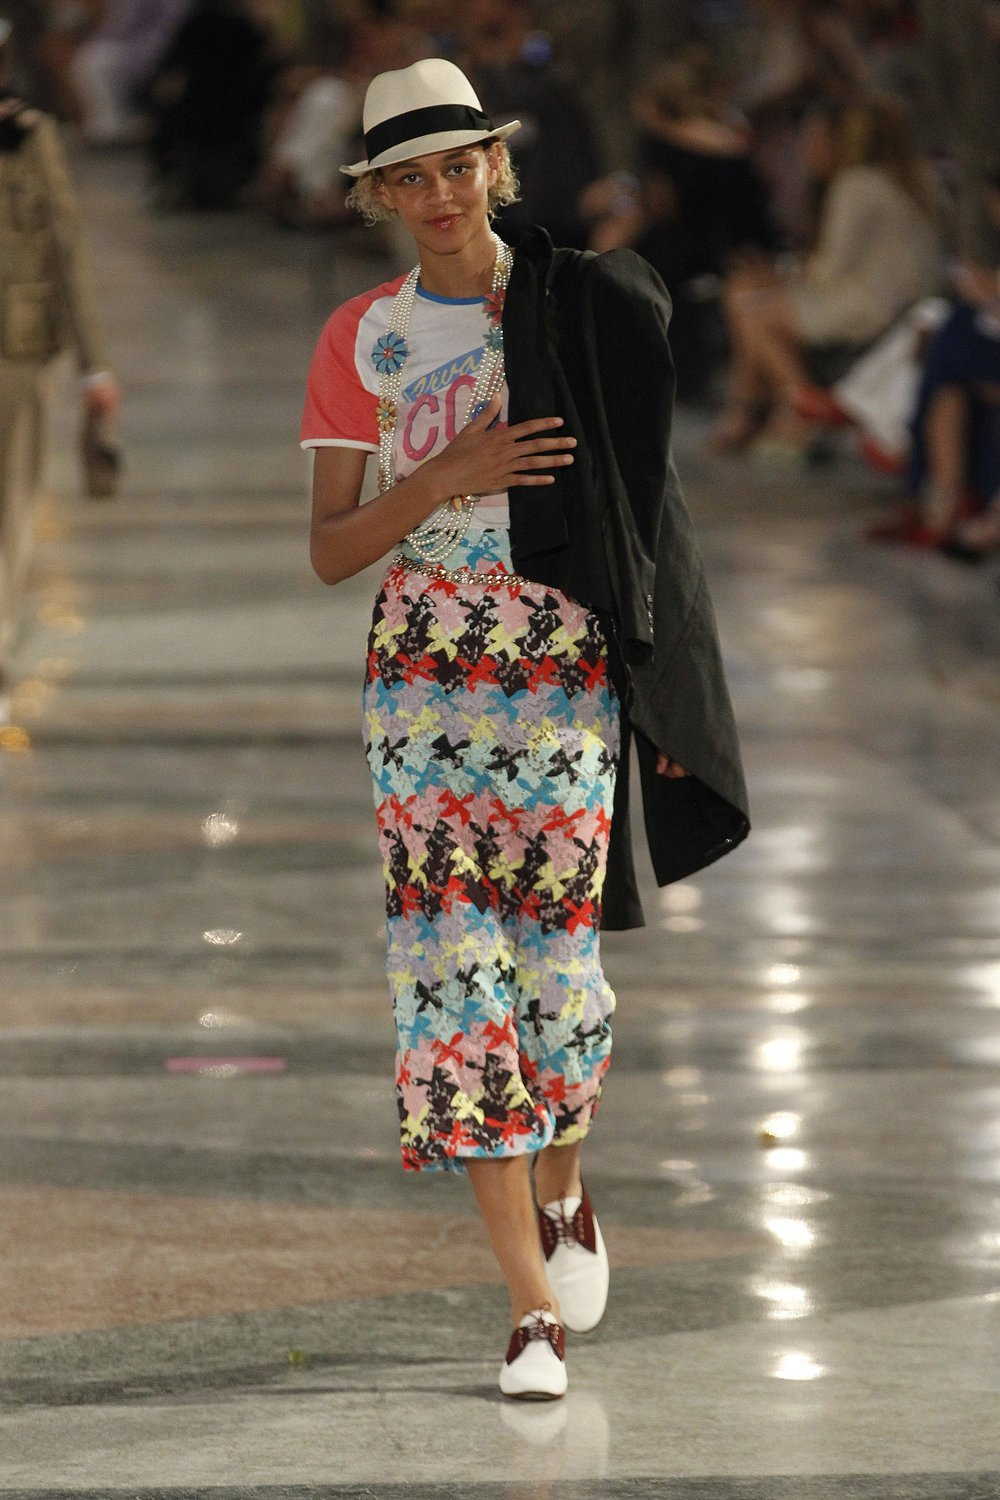 A model walks down the runway in a look from the Chanel Resort 2017 Collection.